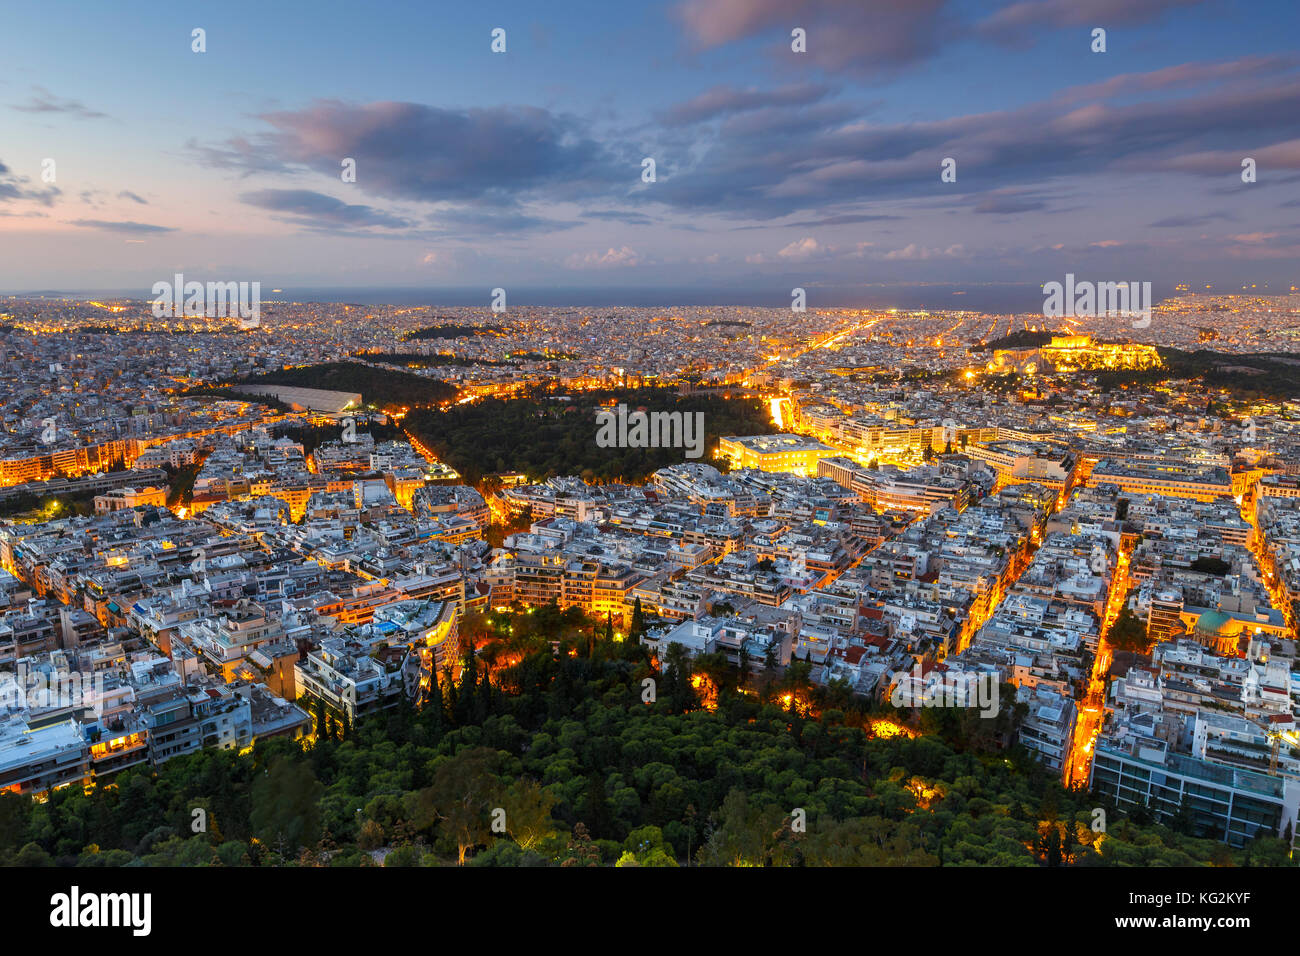 View of Acropolis and city of Athens from Lycabettus hill at sunrise, Greece. - Stock Image